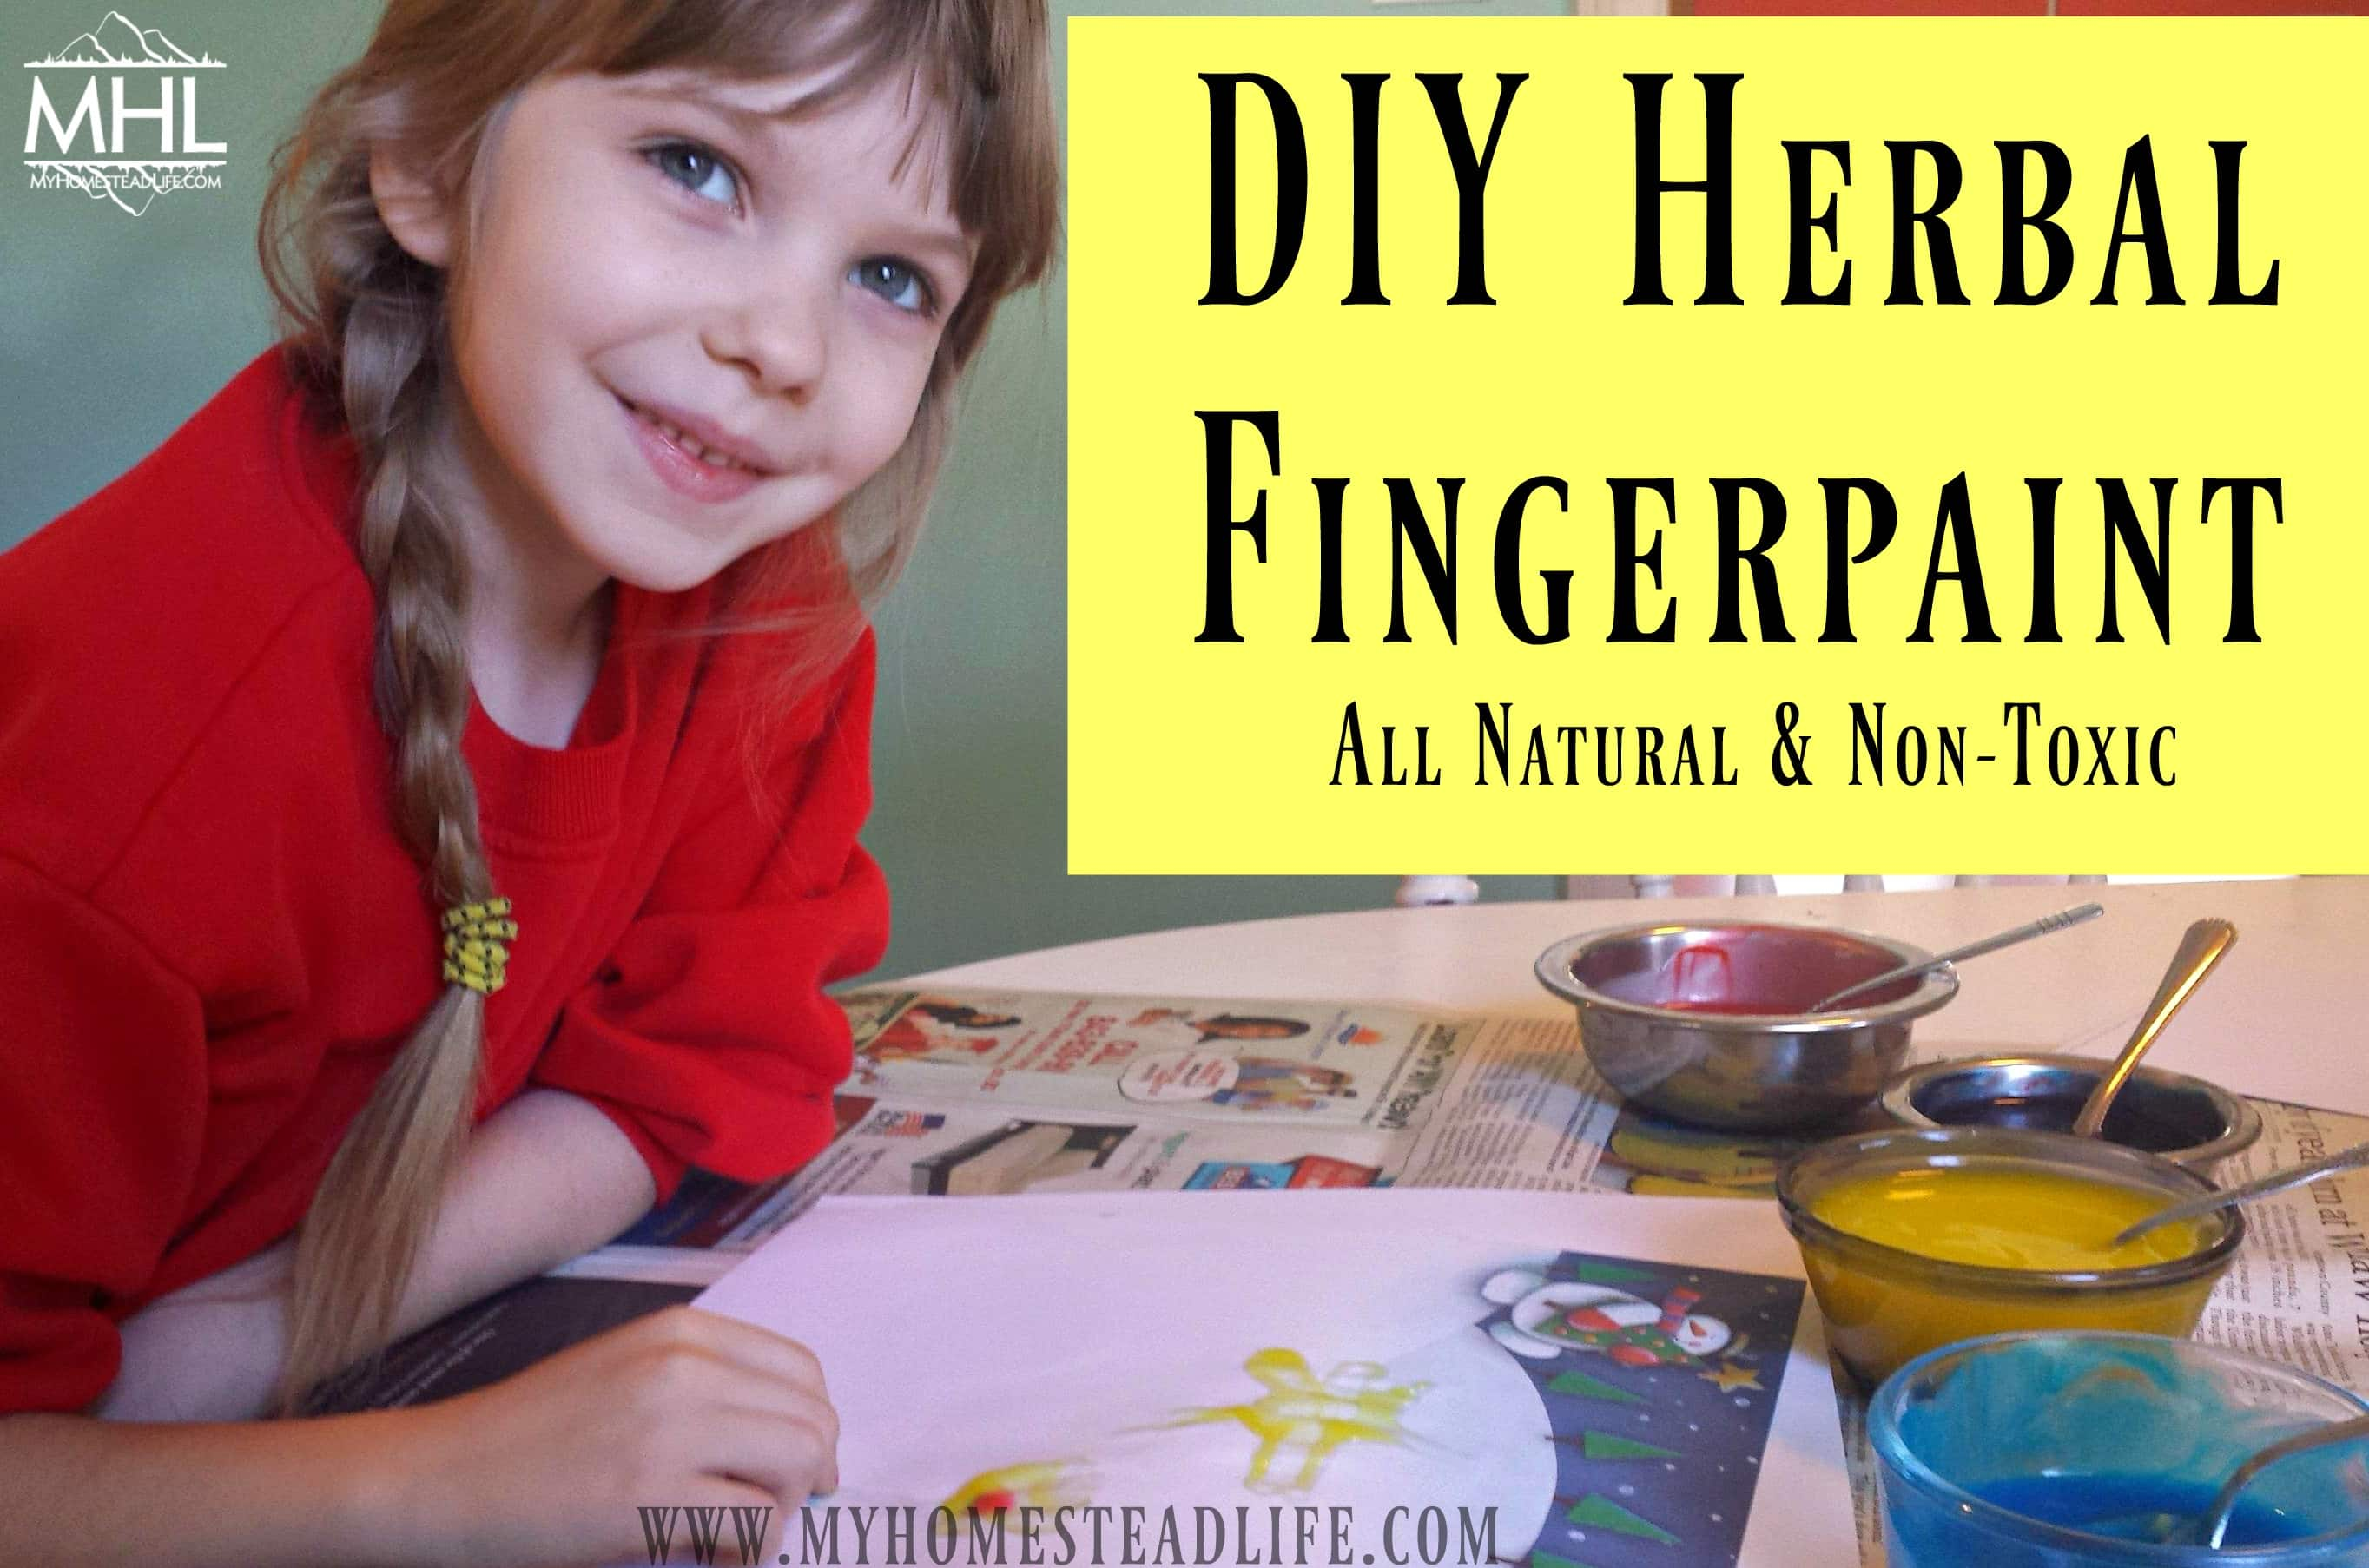 DIY Herbal Fingerpaint Recipe